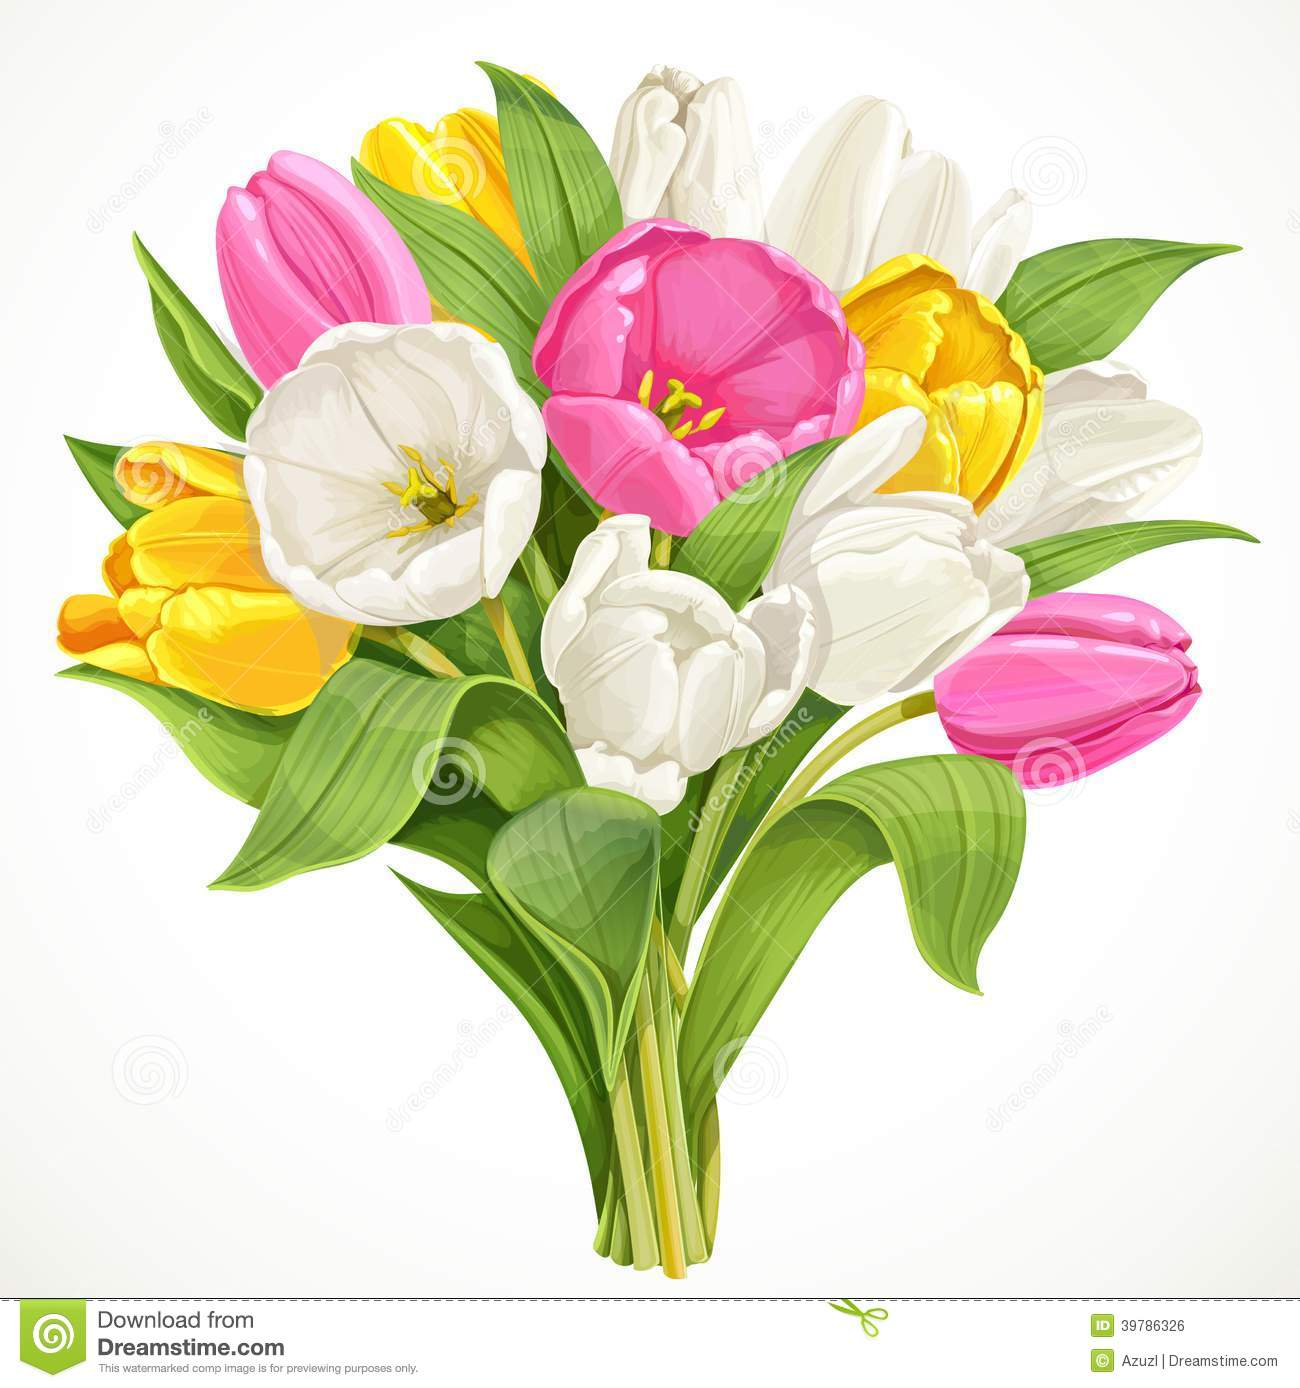 Bouquet des tulipes blanches roses et jaunes illustration for Bouquet de tulipes